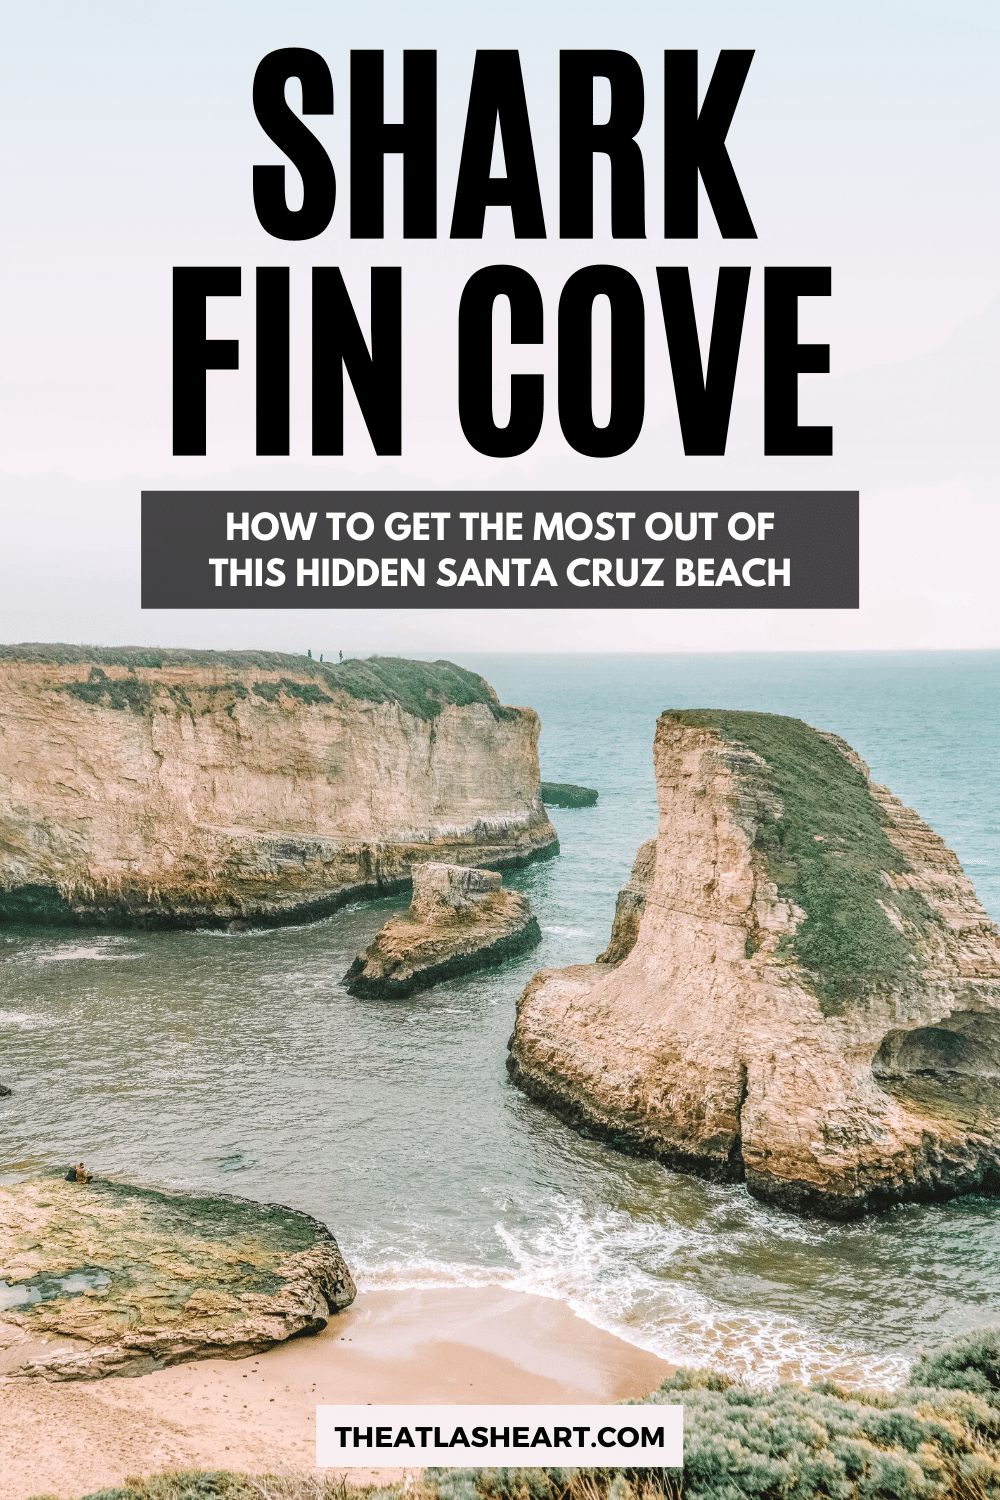 Shark Fin Cove: How to Get the Most Out of This Hidden Beach